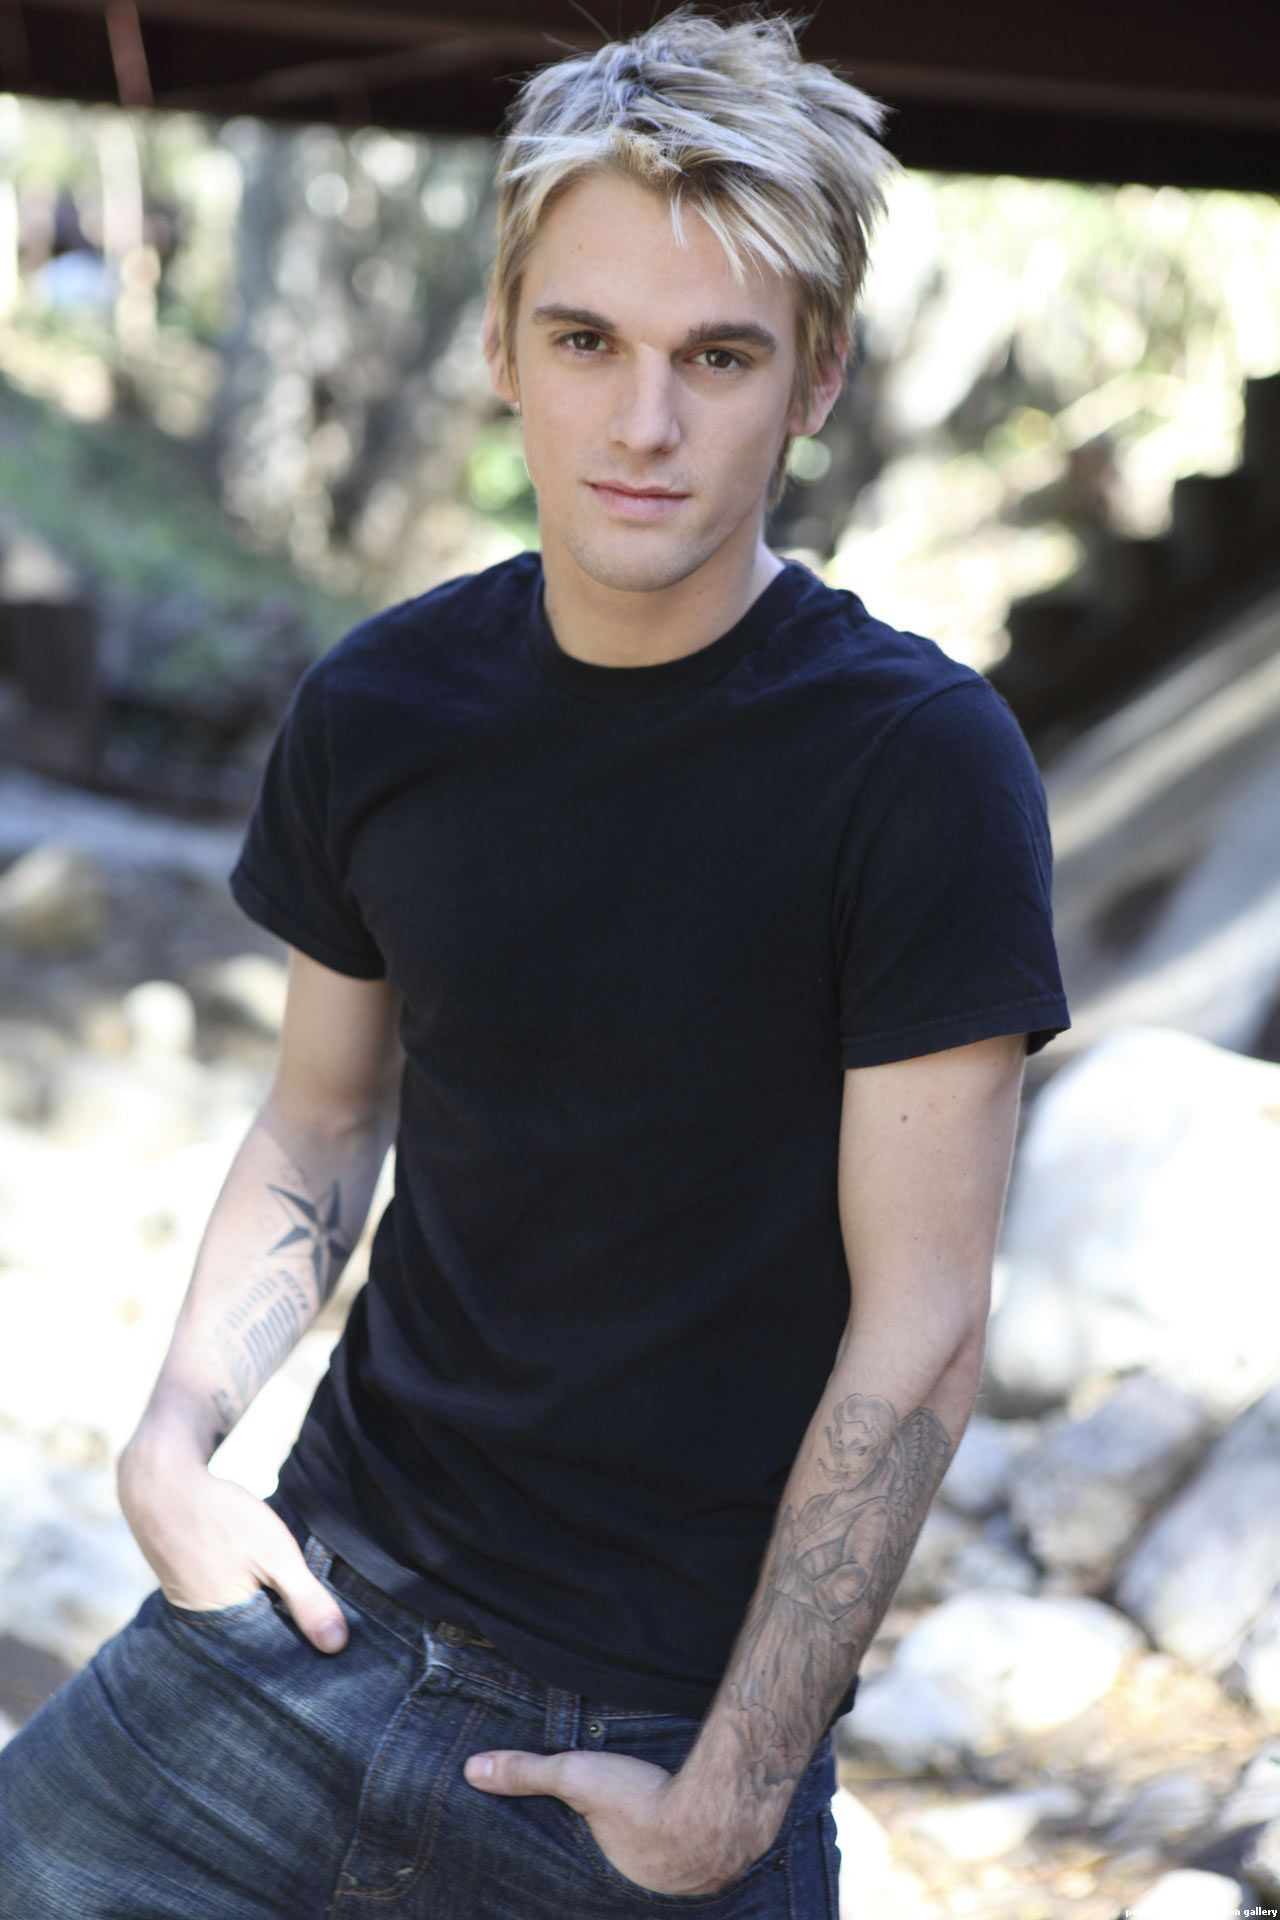 Not that I think so now, but Aaron Carter was my very first crush ever!